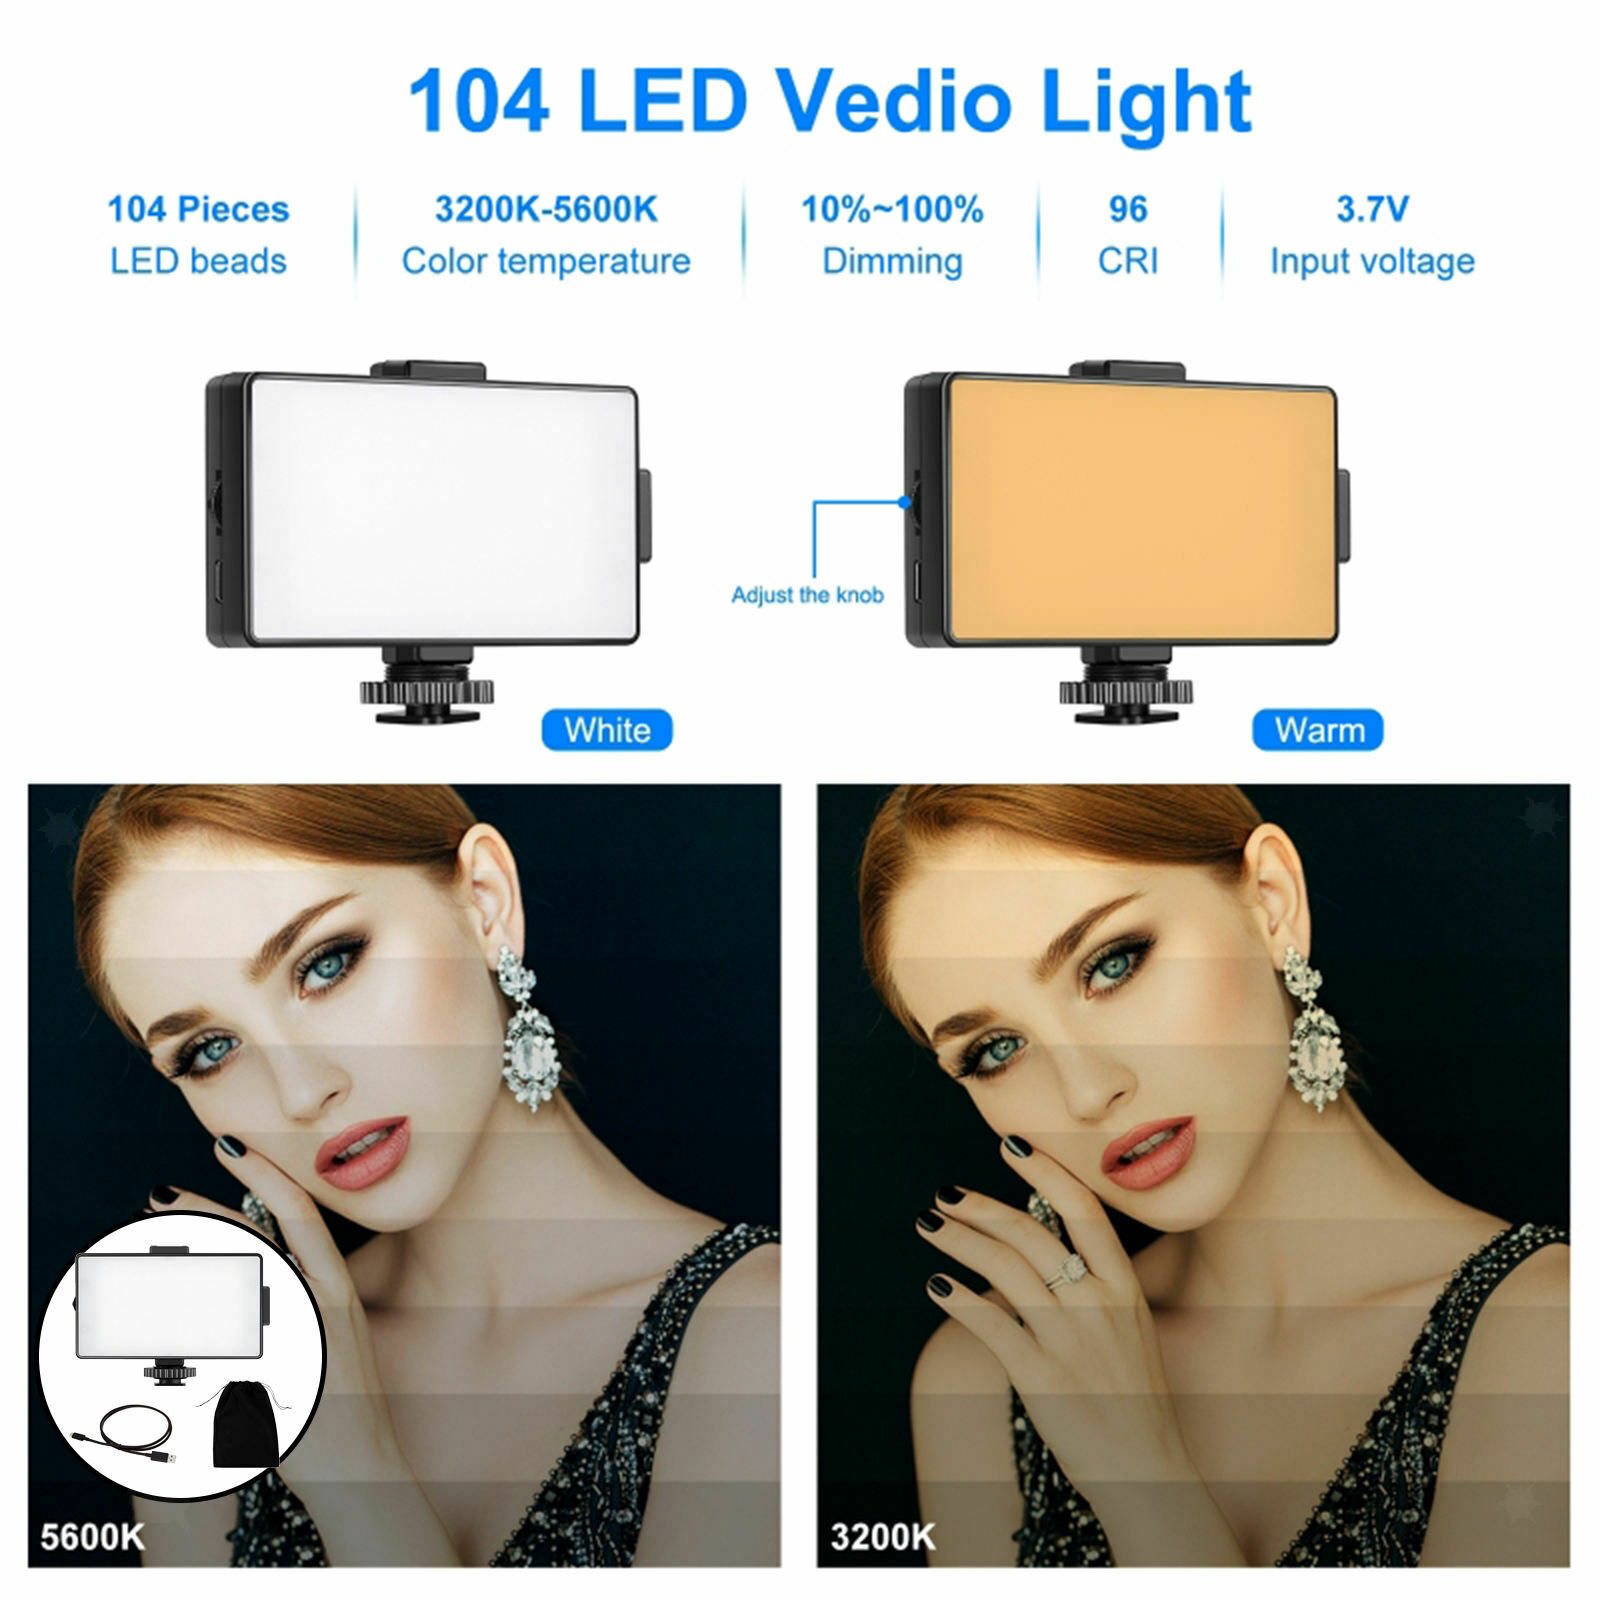 Dimmable On-Camera Video Light Lighting Supplies for DSLR Cameras Filming